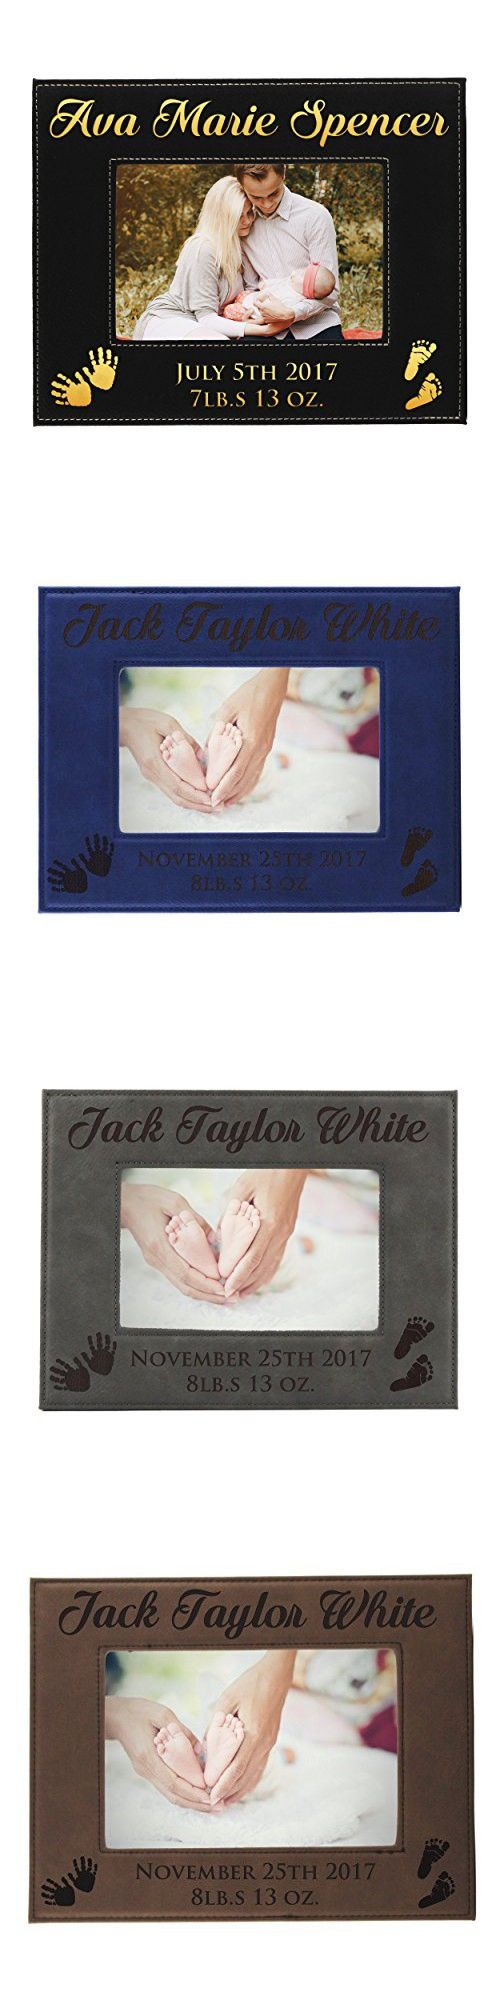 Personalized New Baby Photo Frame - Custom Engraved Boy Girl Leather Picture Frame Gift - Monogrammed for Free (5 x 7)